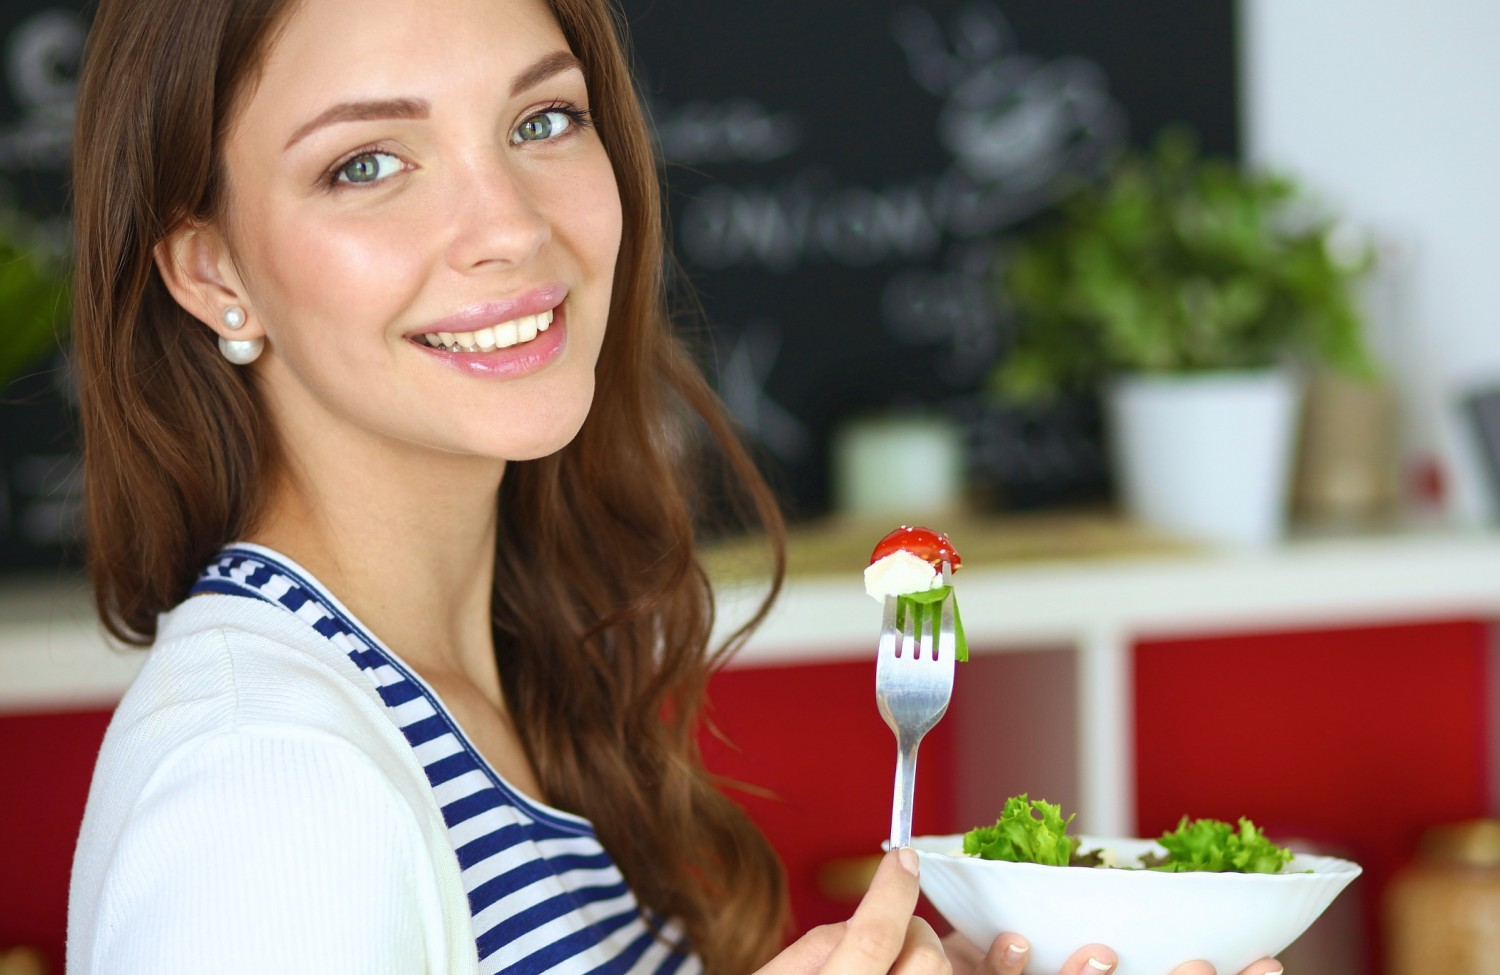 BM_Young woman eating salad and holding_95367192